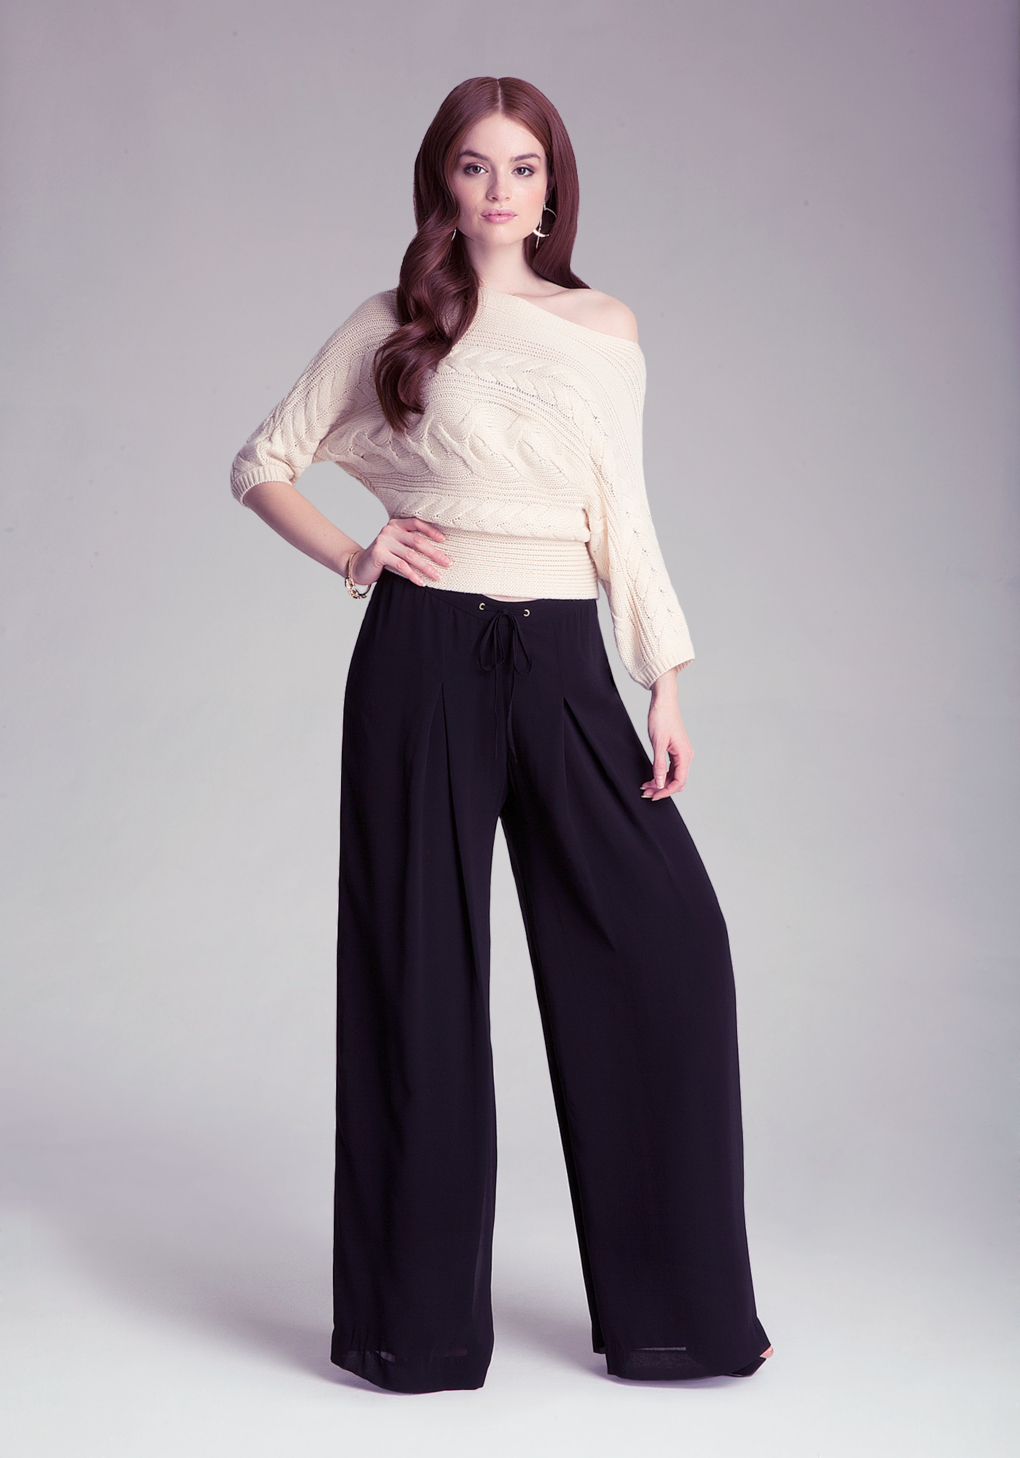 Bebe Petite Wide Leg Pants in Black | Lyst